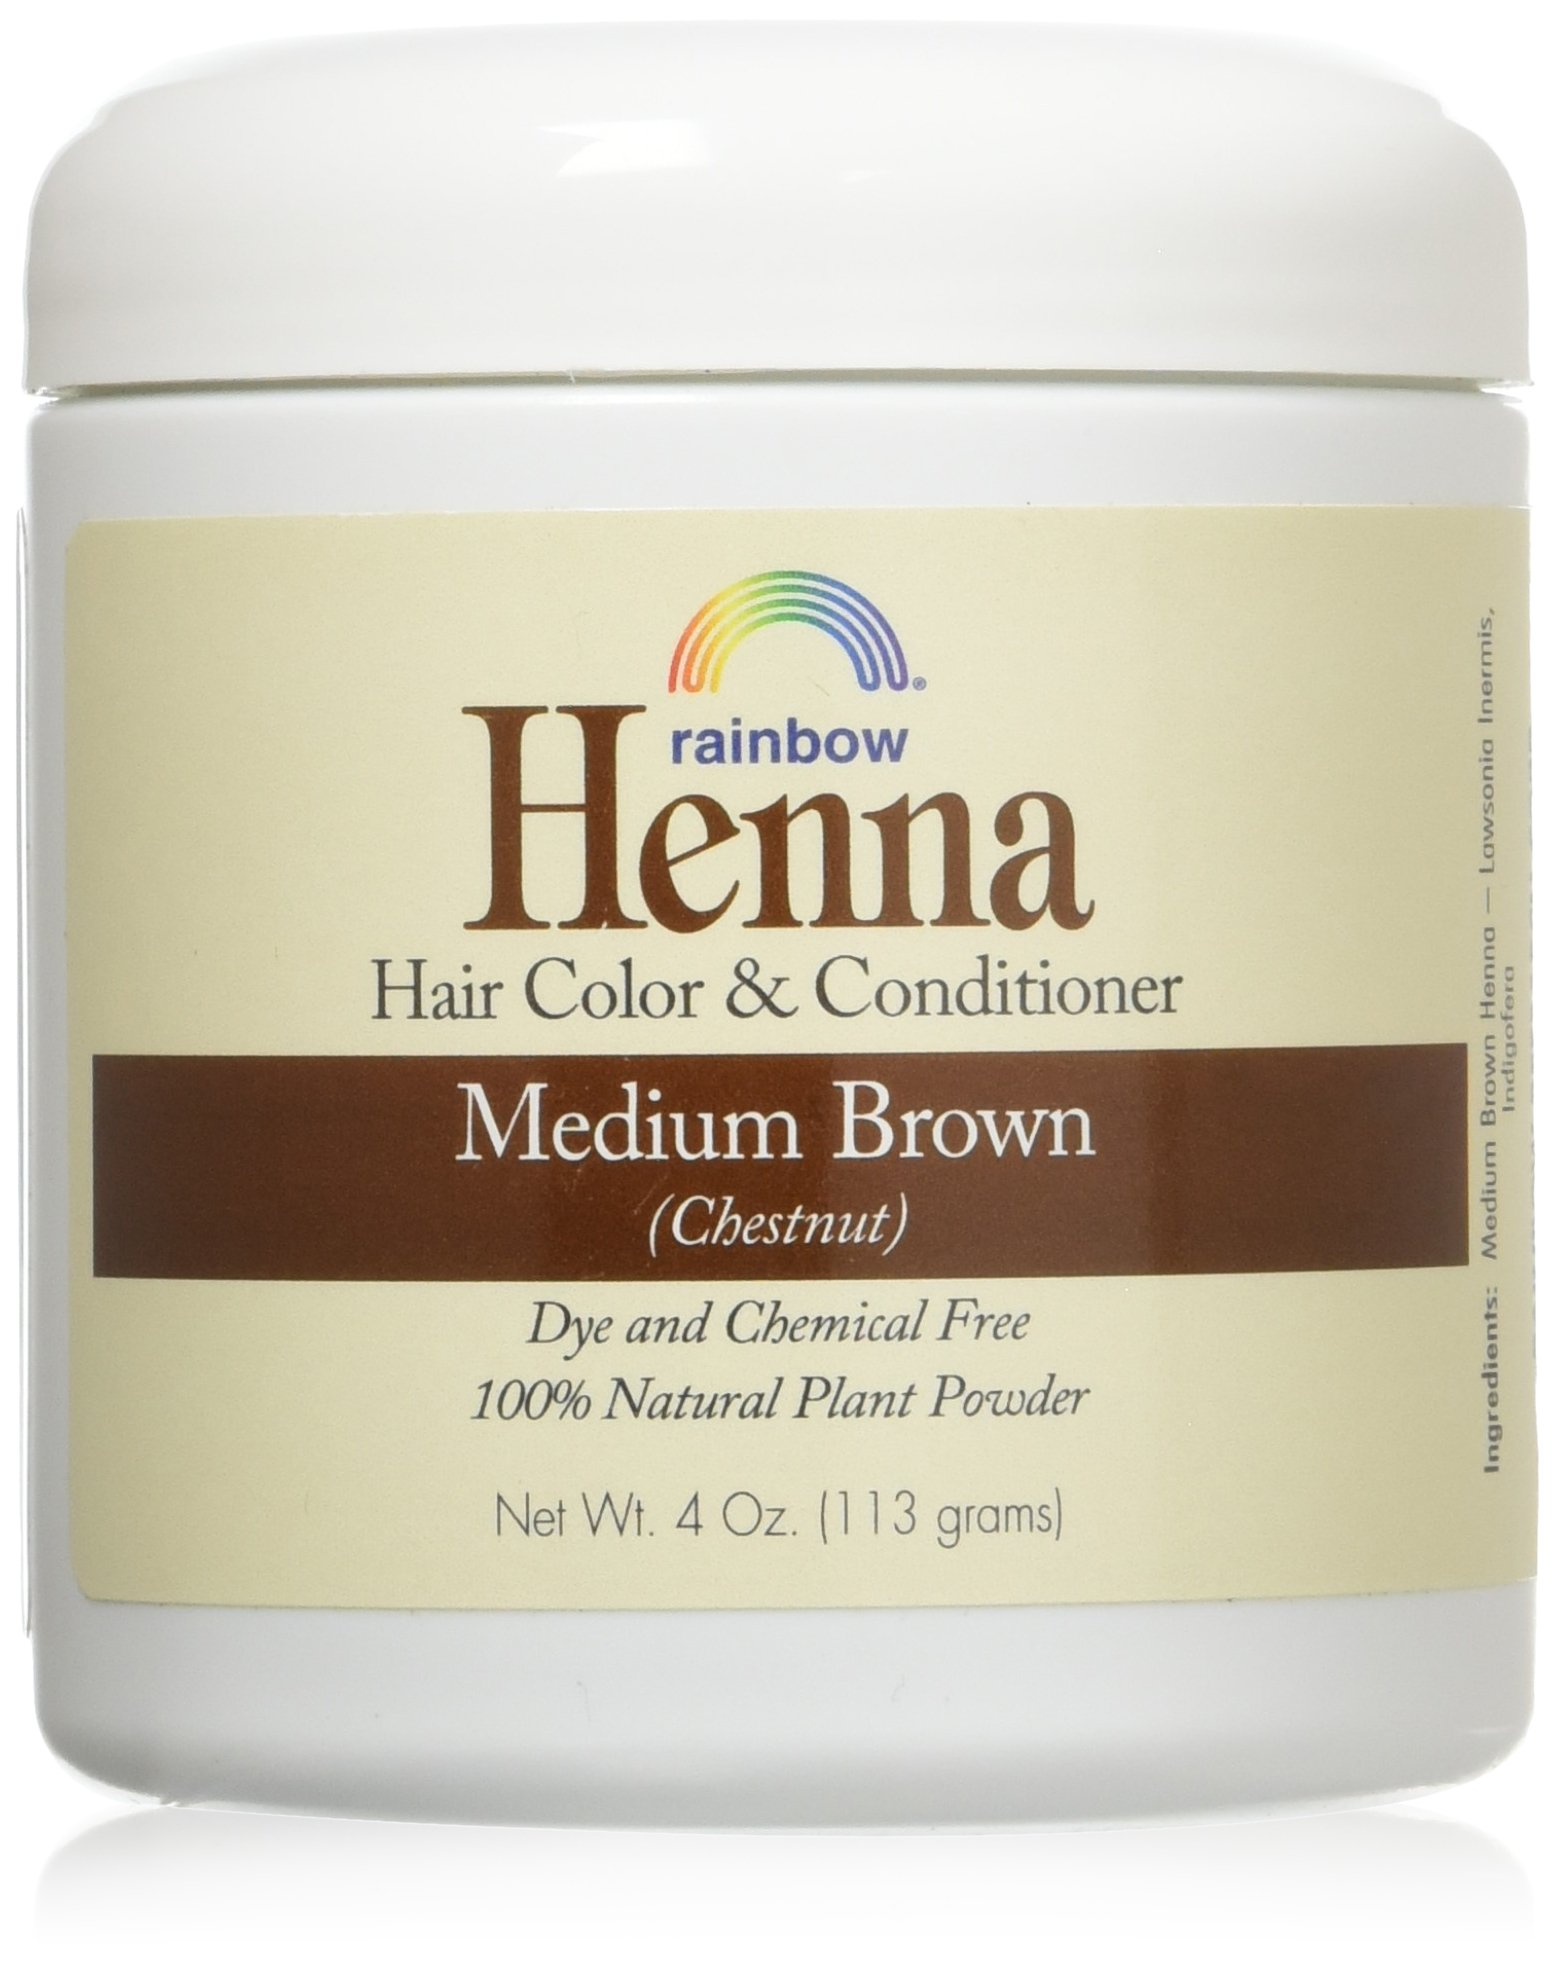 Henna (Persian) - Med Brown (Chestnut), 4 oz (pack of 2)